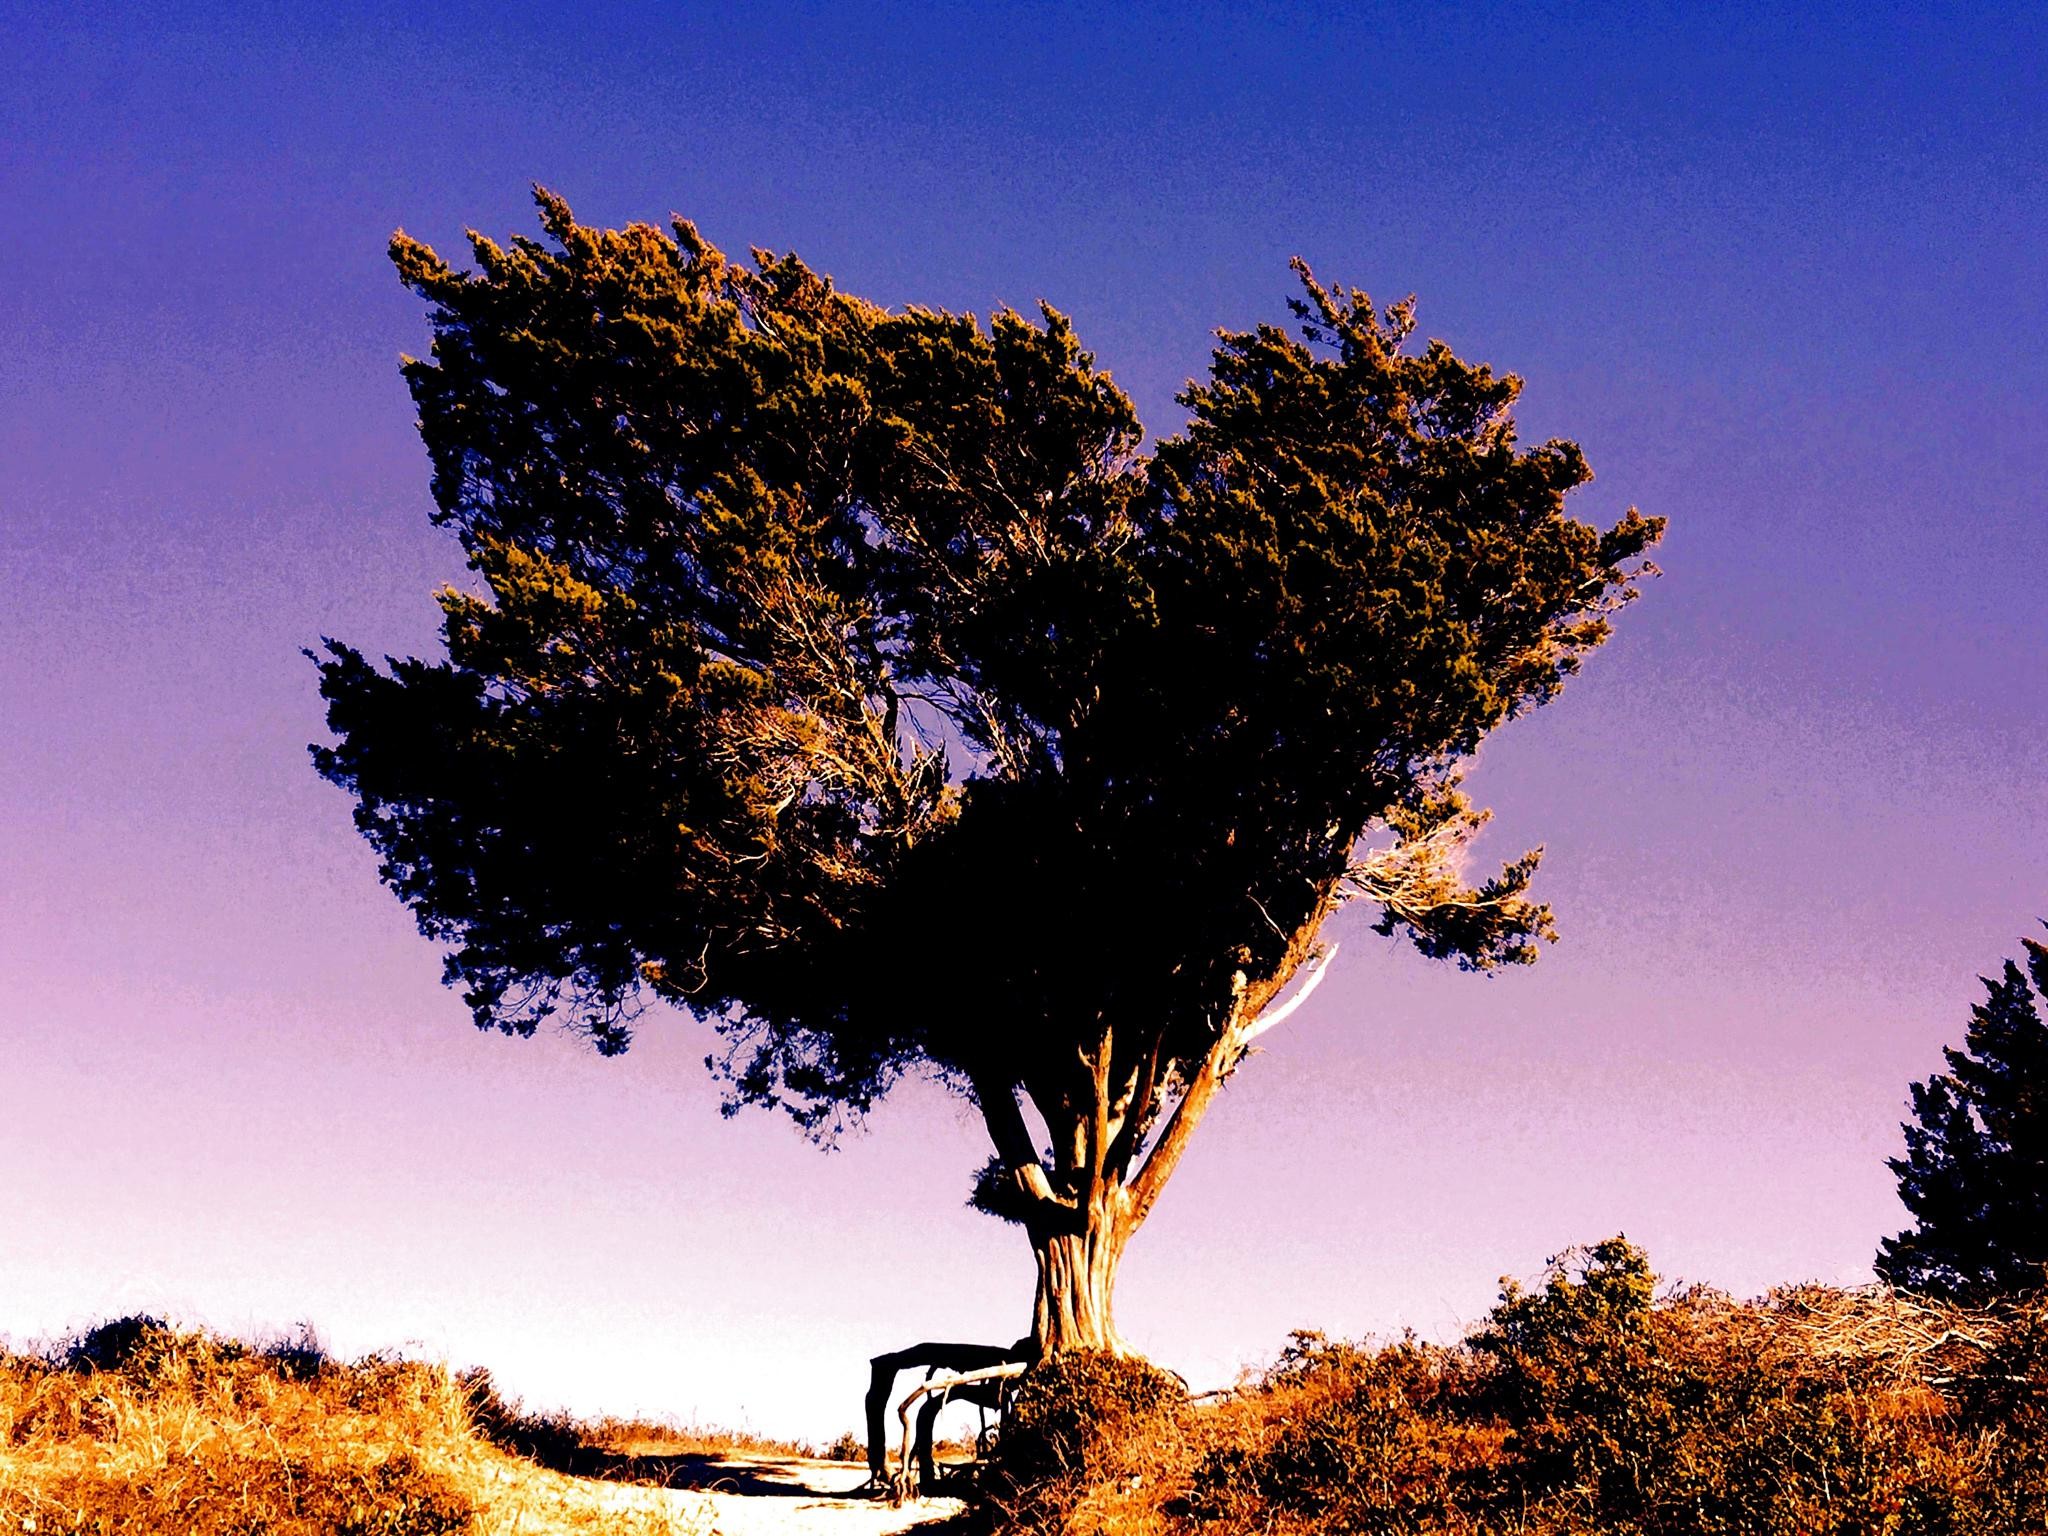 Tree by scausby1